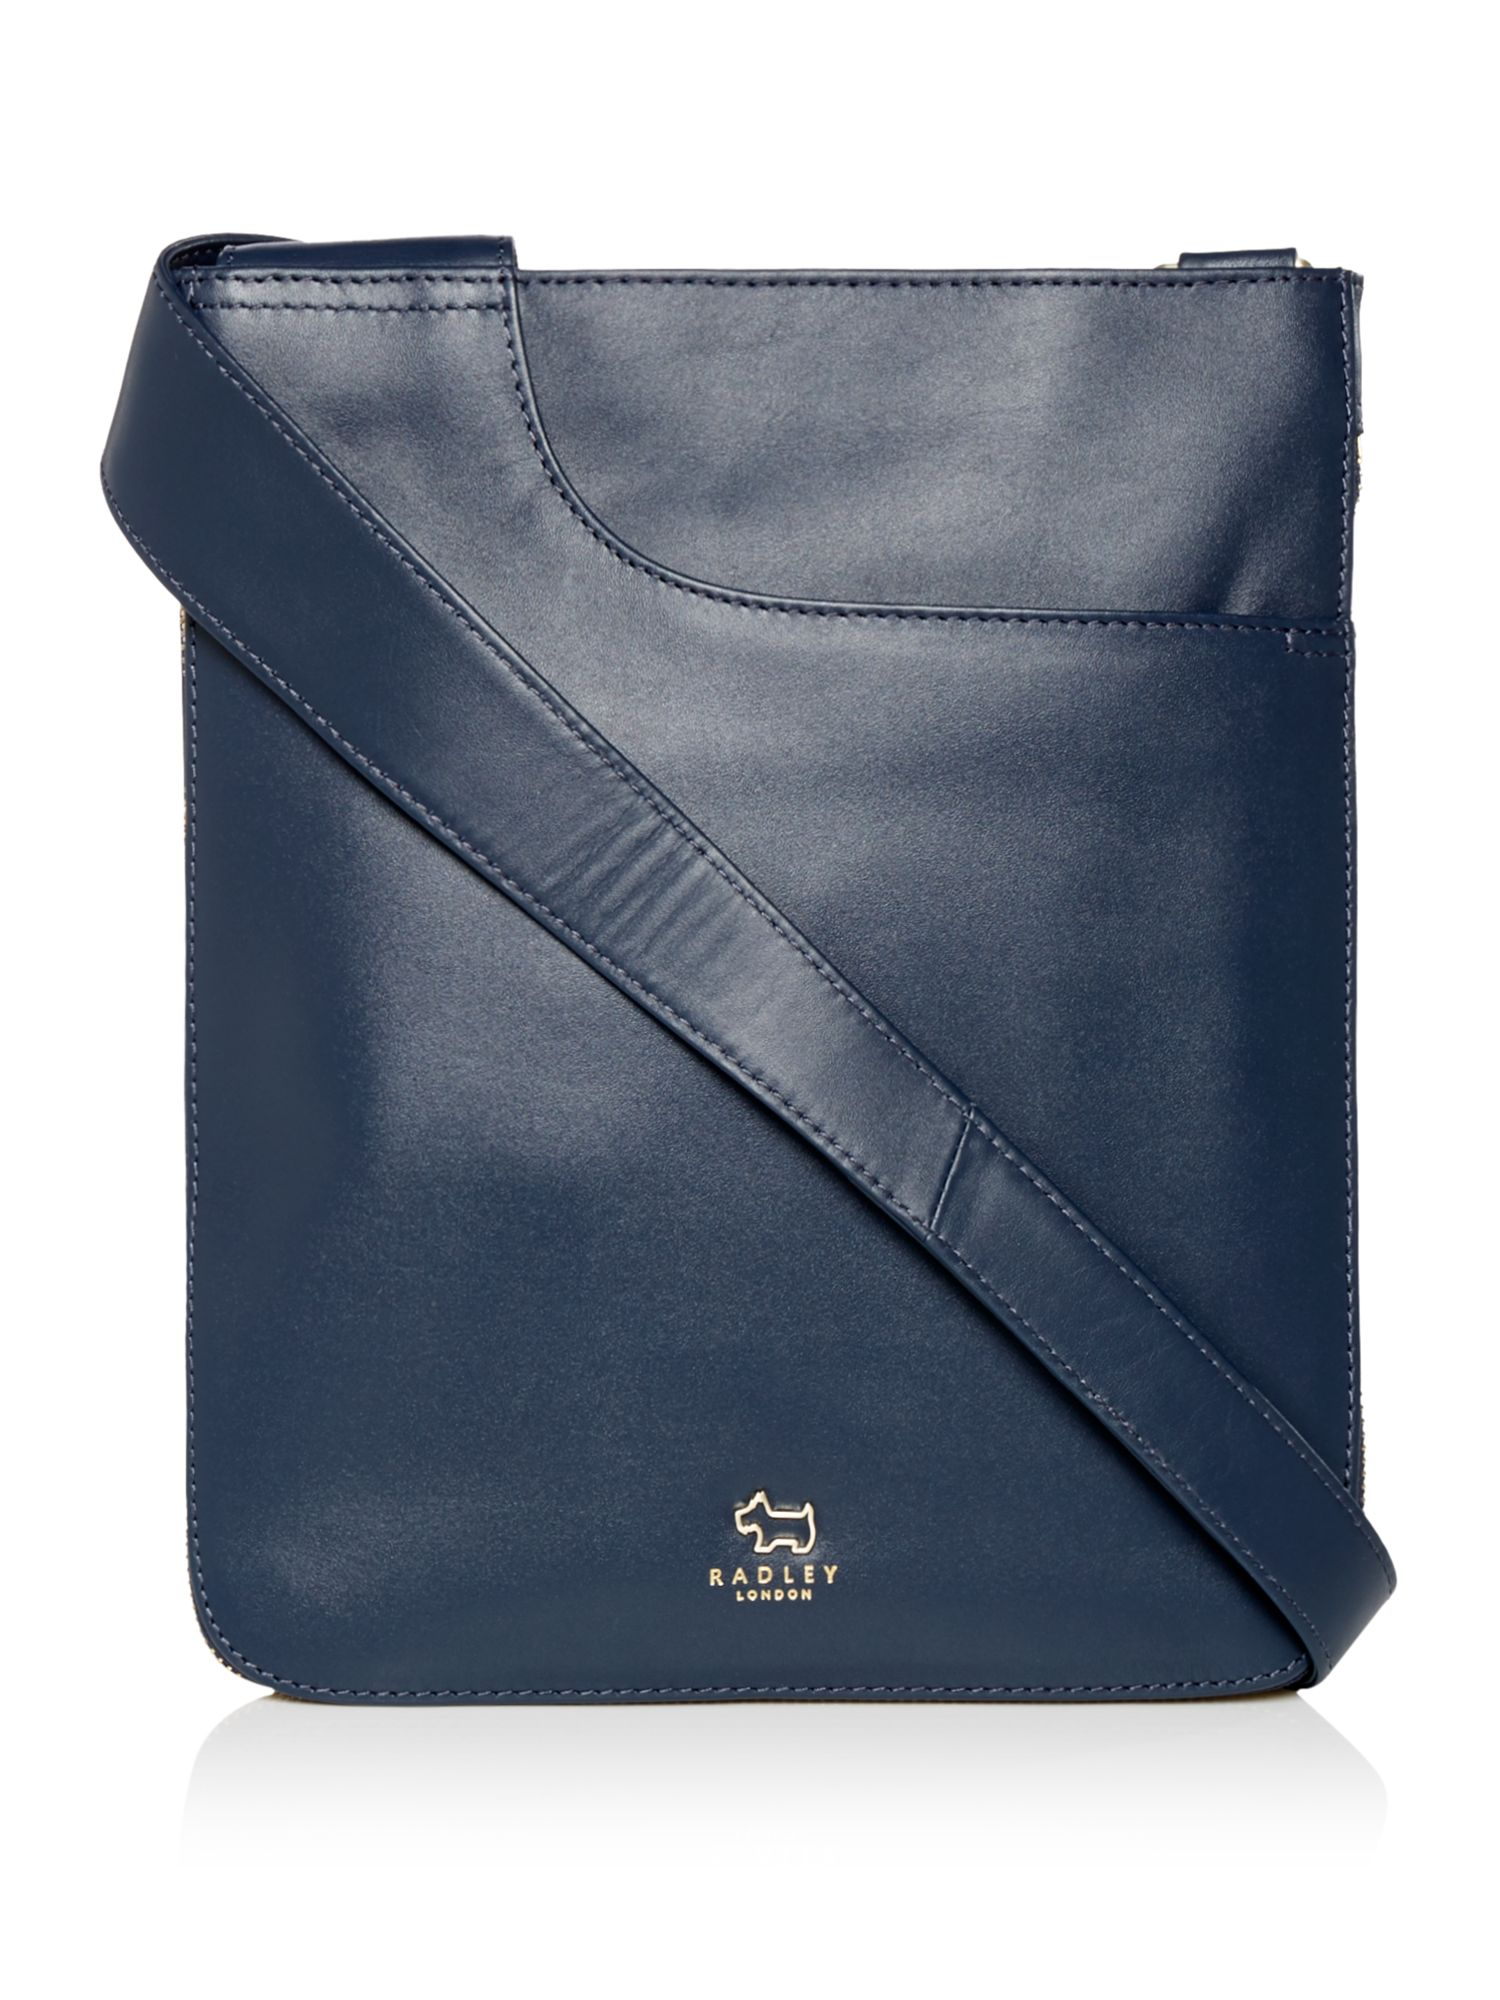 Radley Pocket bag medium zip cross body bag Navy